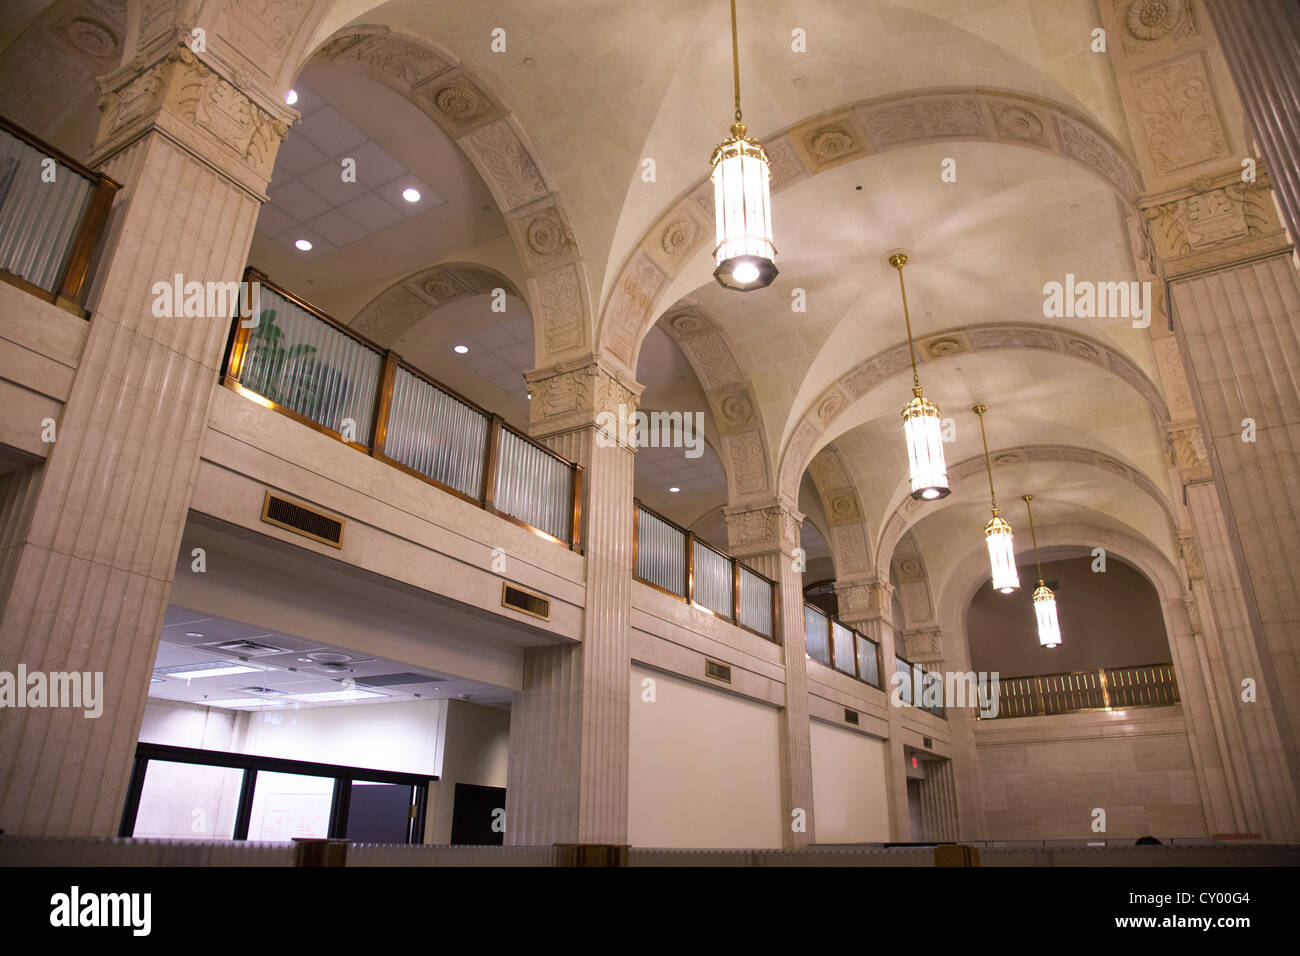 Ceiling of vintage art deco bank interior stock image